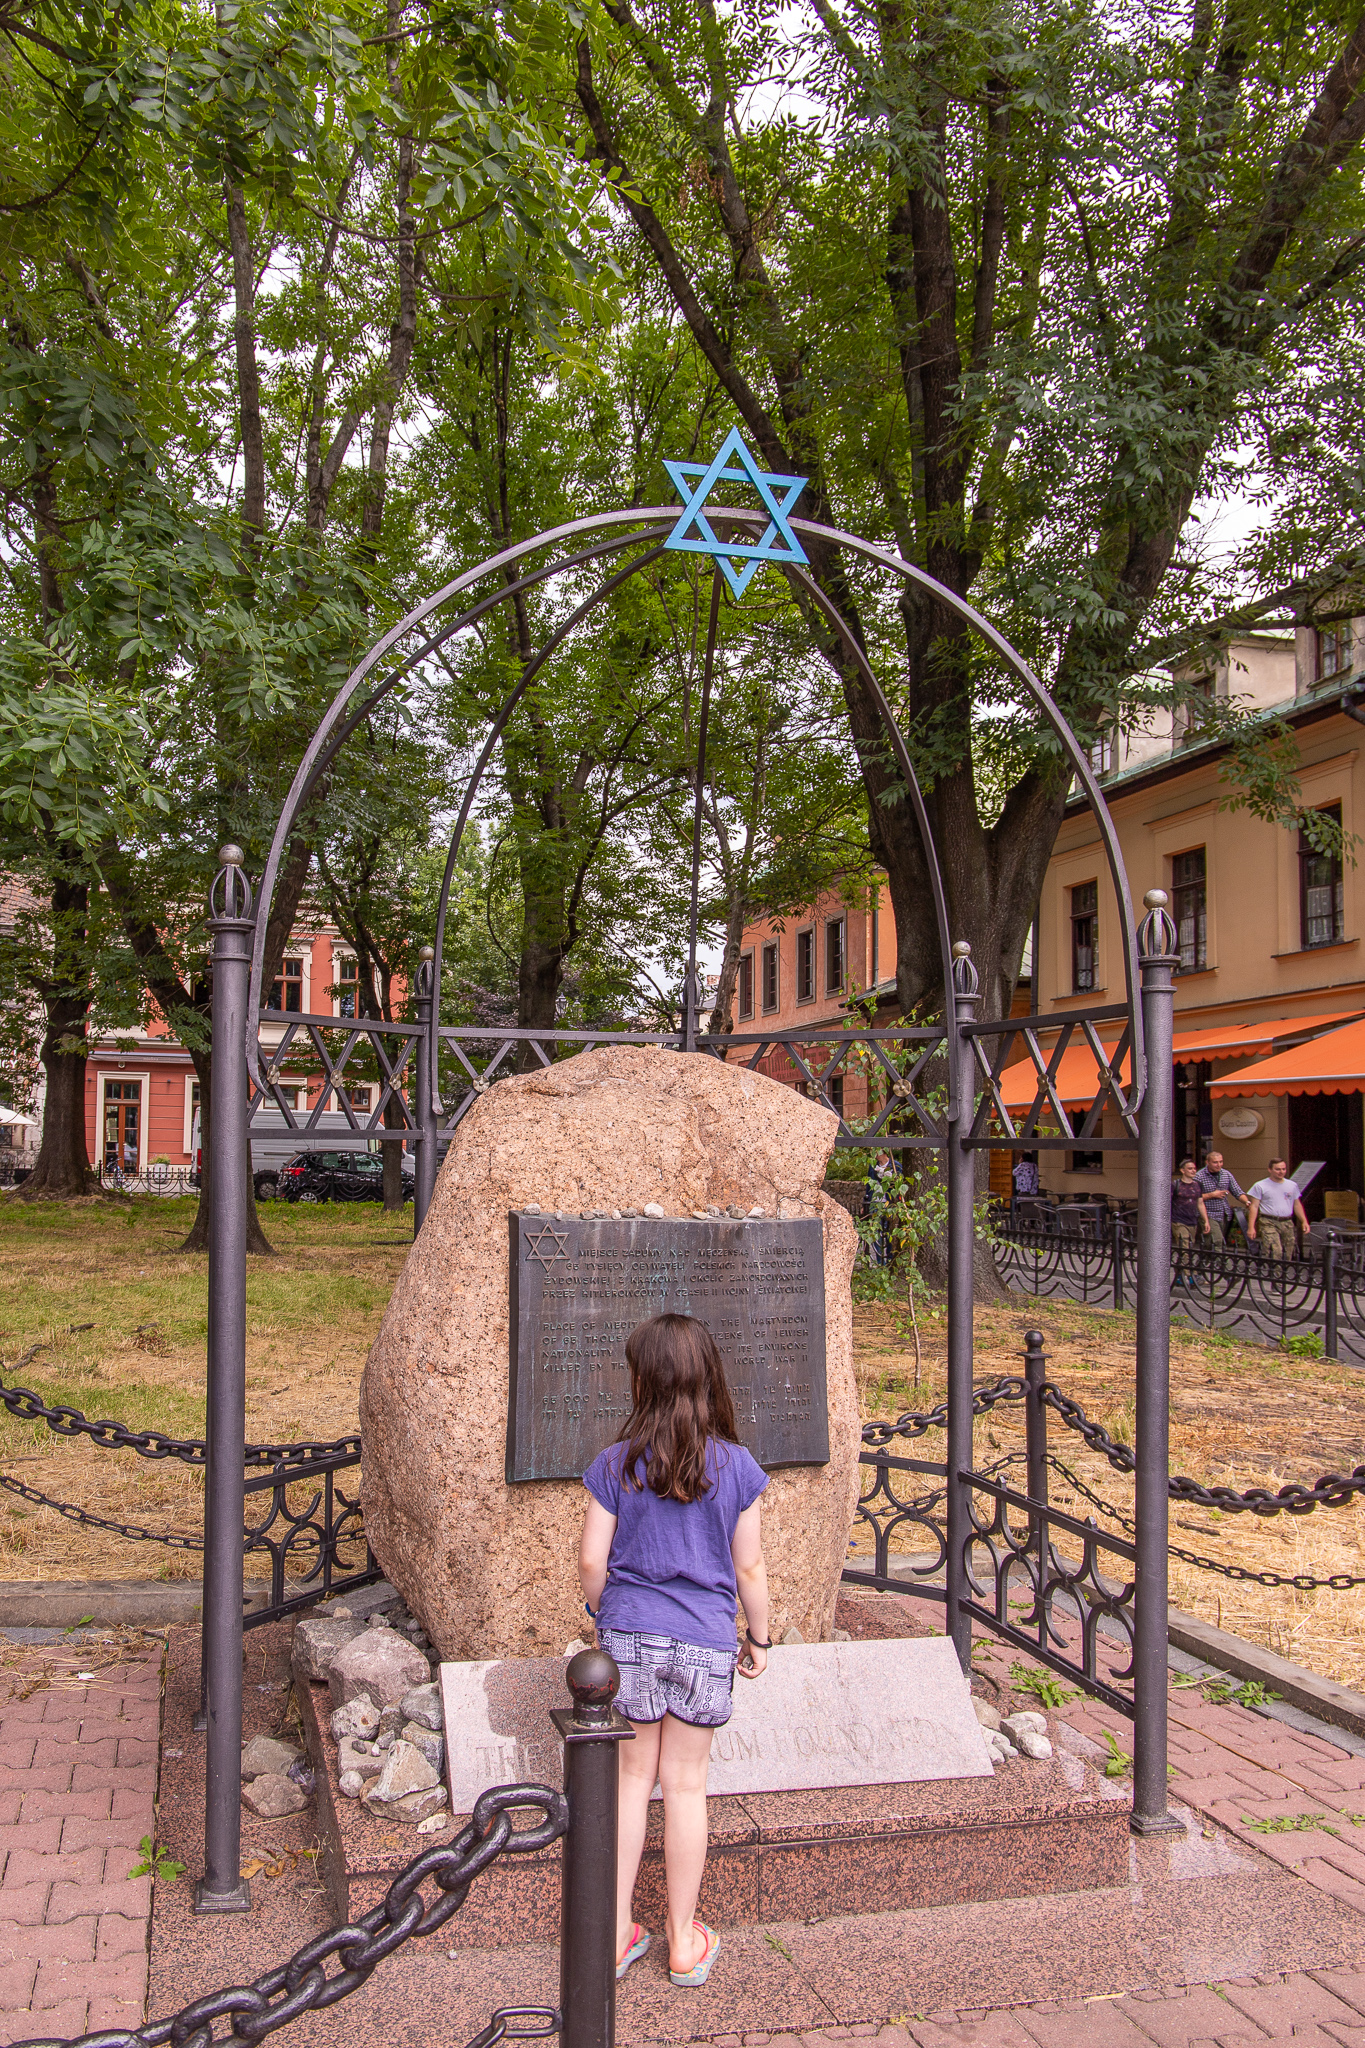 Emmy about to say a prayer for the Jewish people who used to reside in Kazimierz